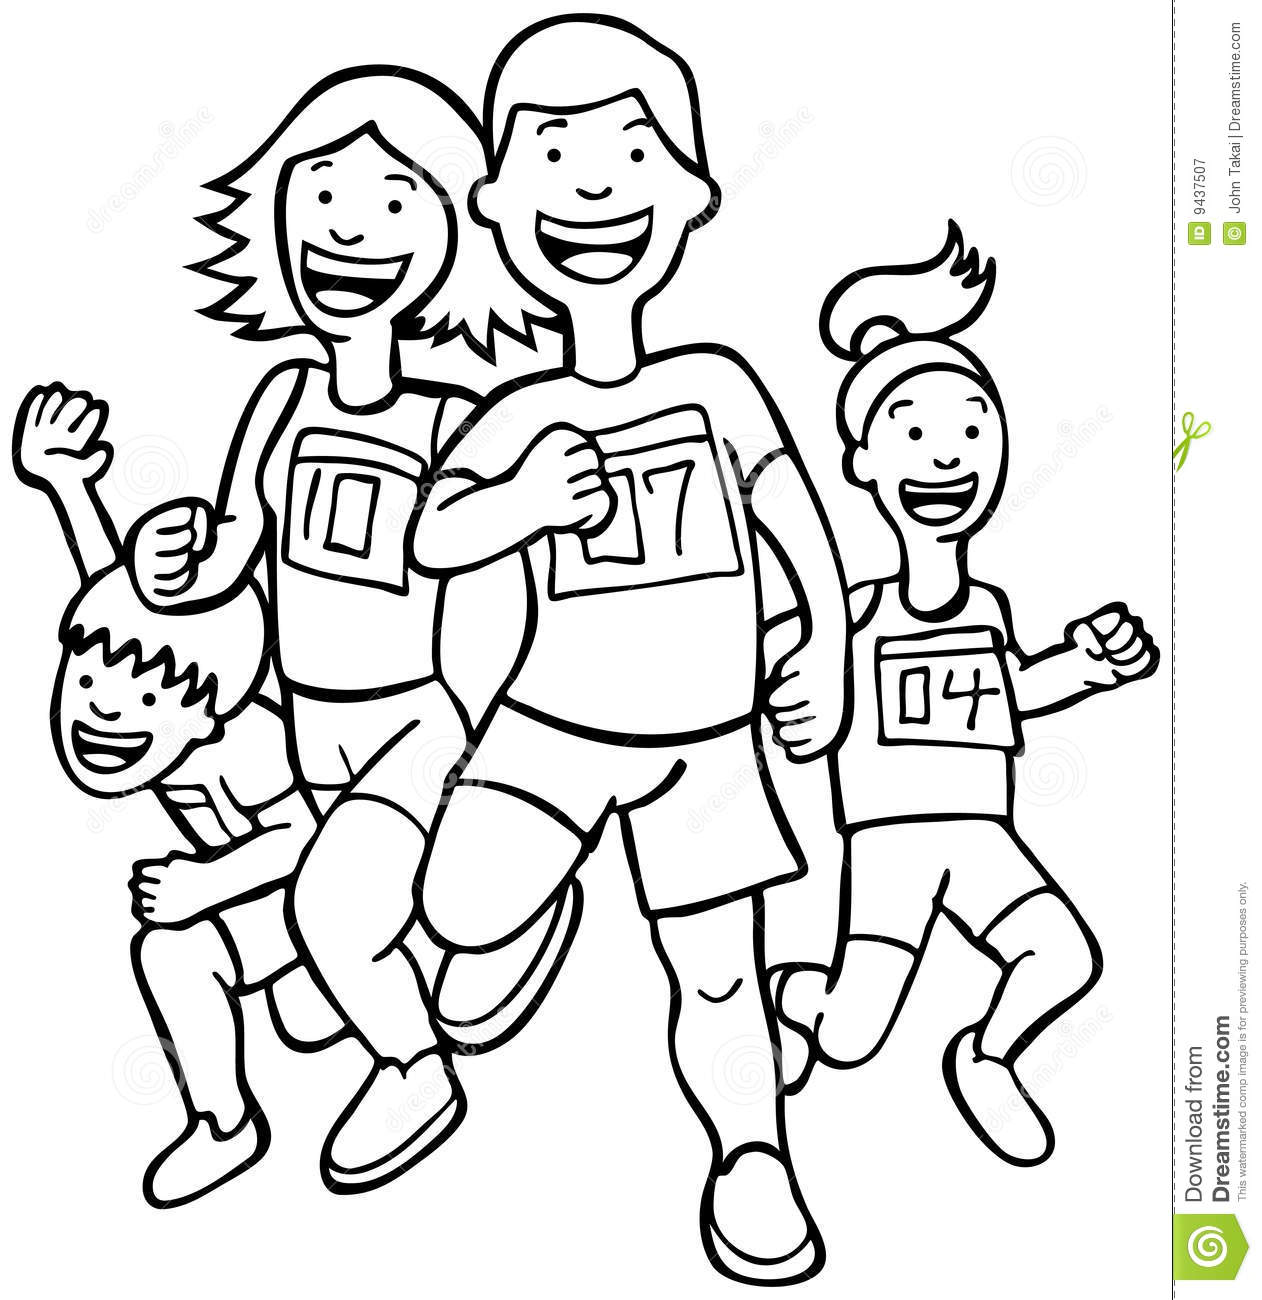 1262x1300 Exercise Running Clipart Black And White